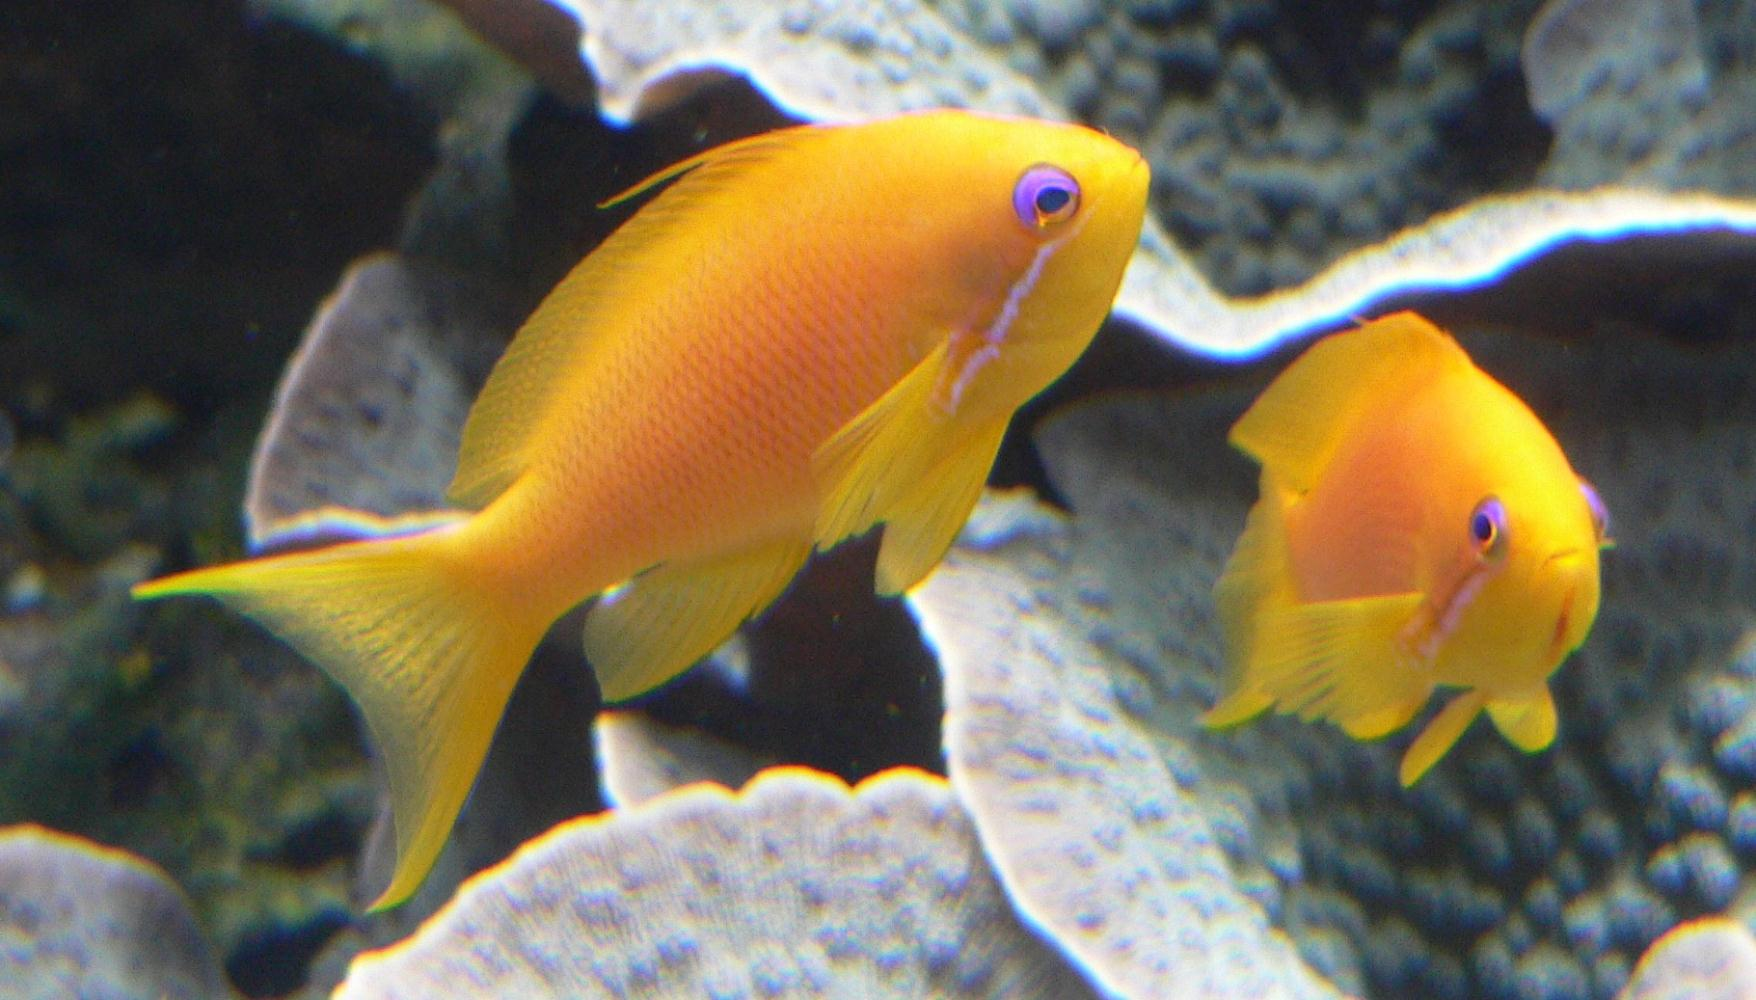 Orange Sea Perch